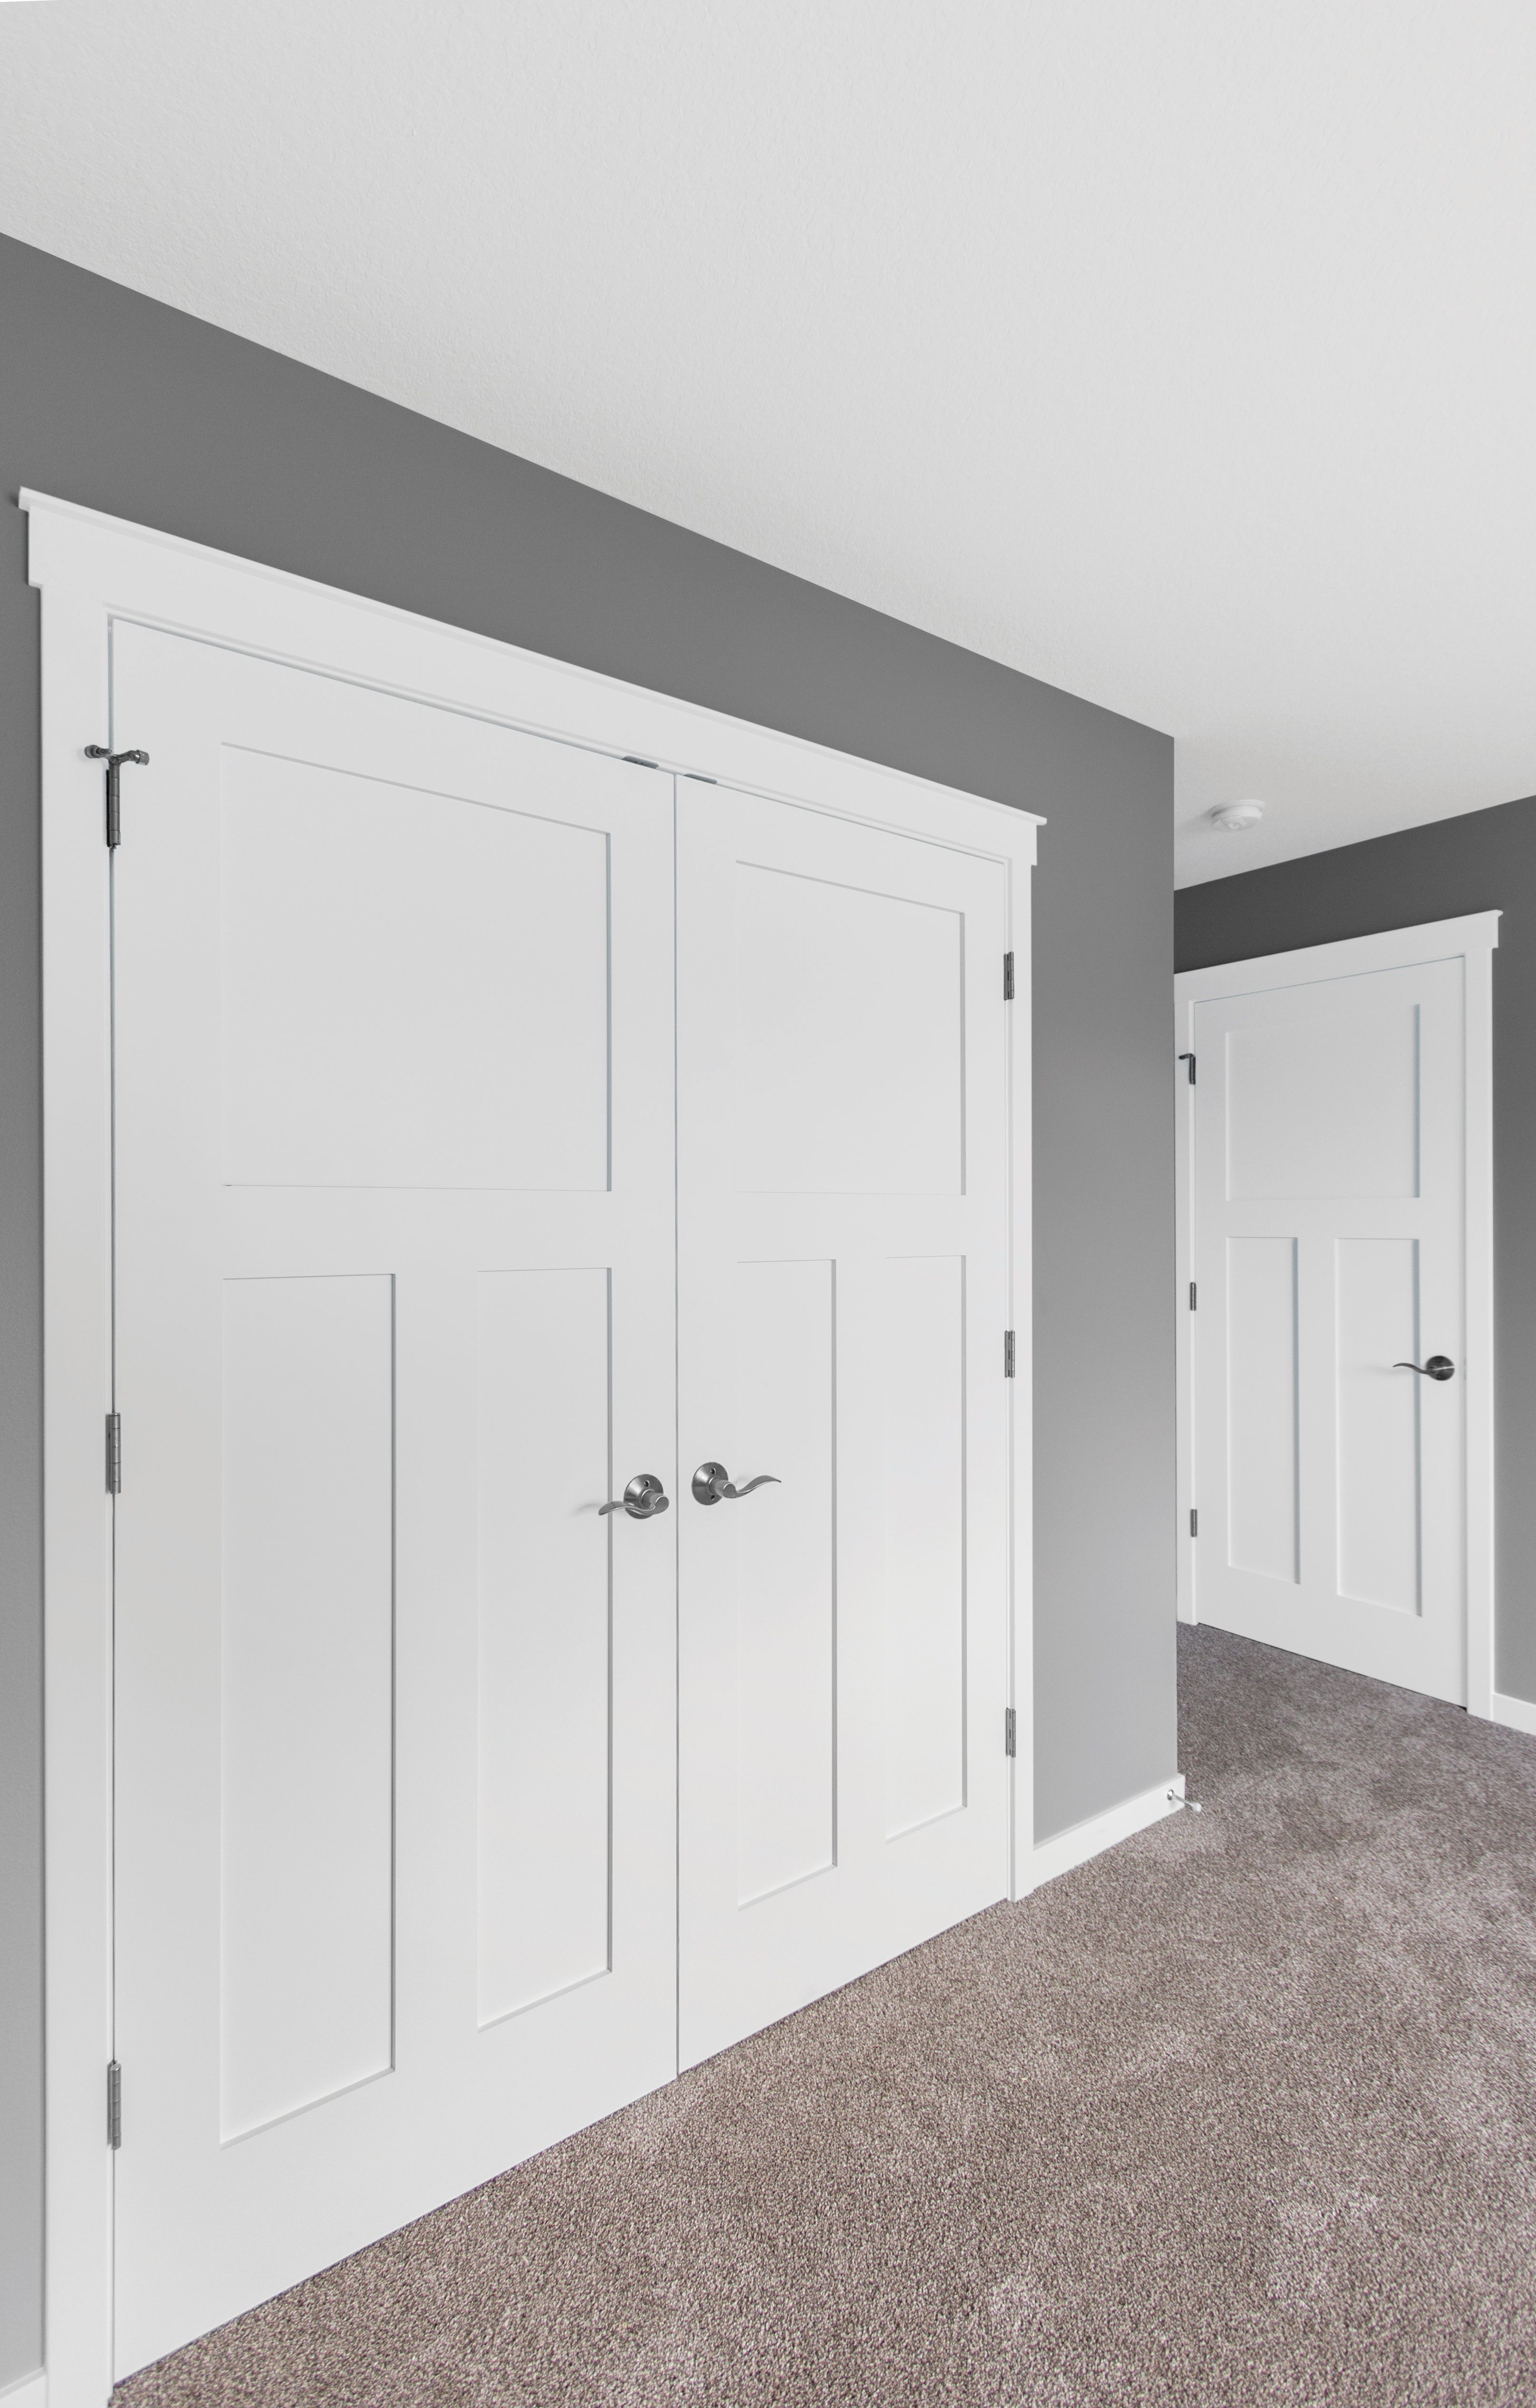 3 Panel Mission Doors From Mastercraft Are Perfect For Any Home Discount Interior Doors Craftsman Interior Doors Doors Interior